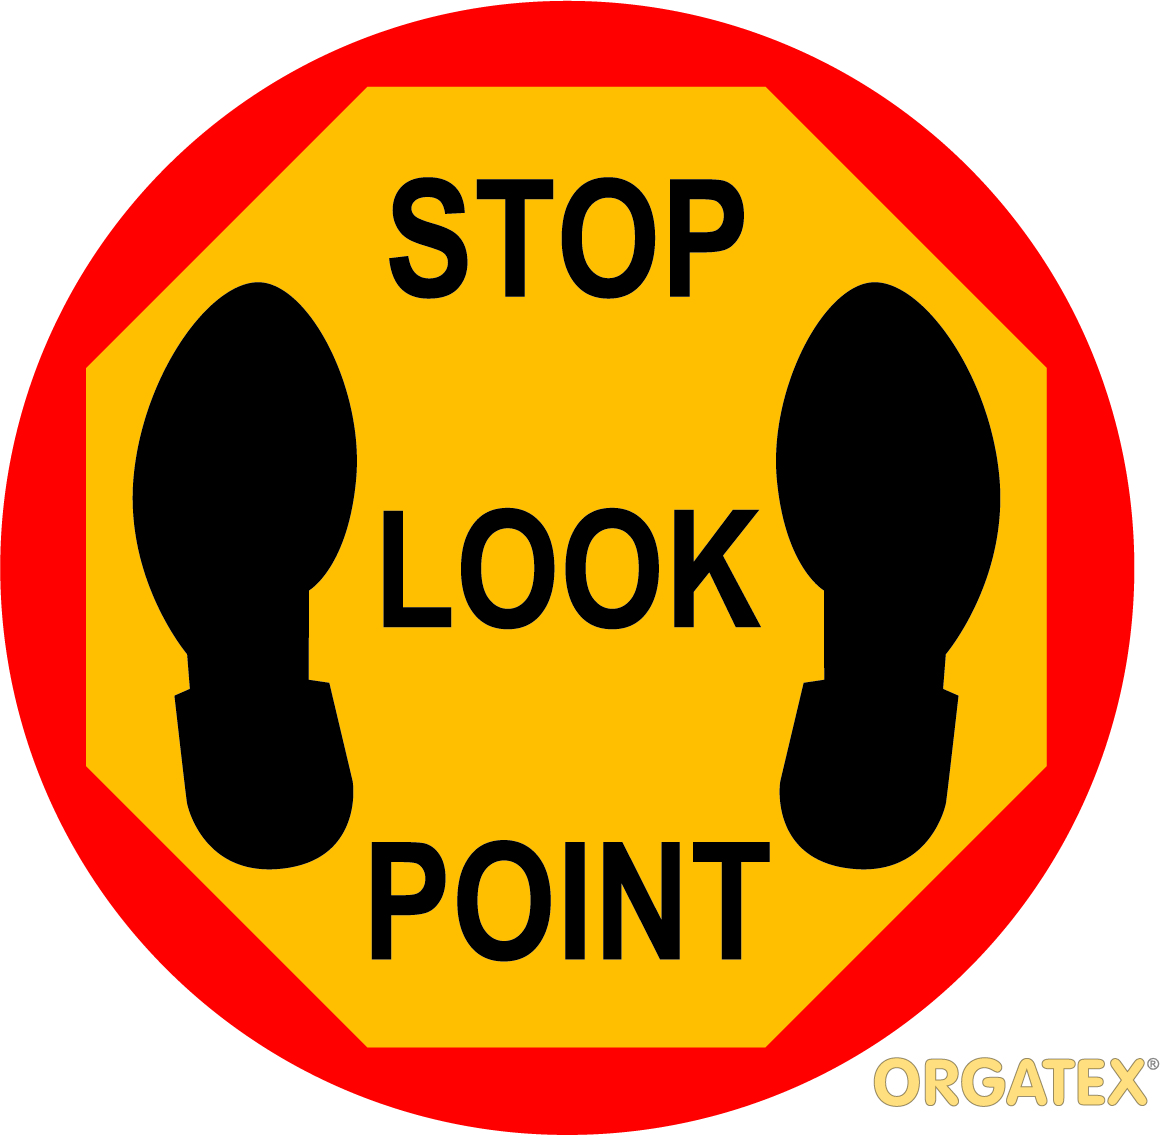 STOP LOOK POINT SIGN